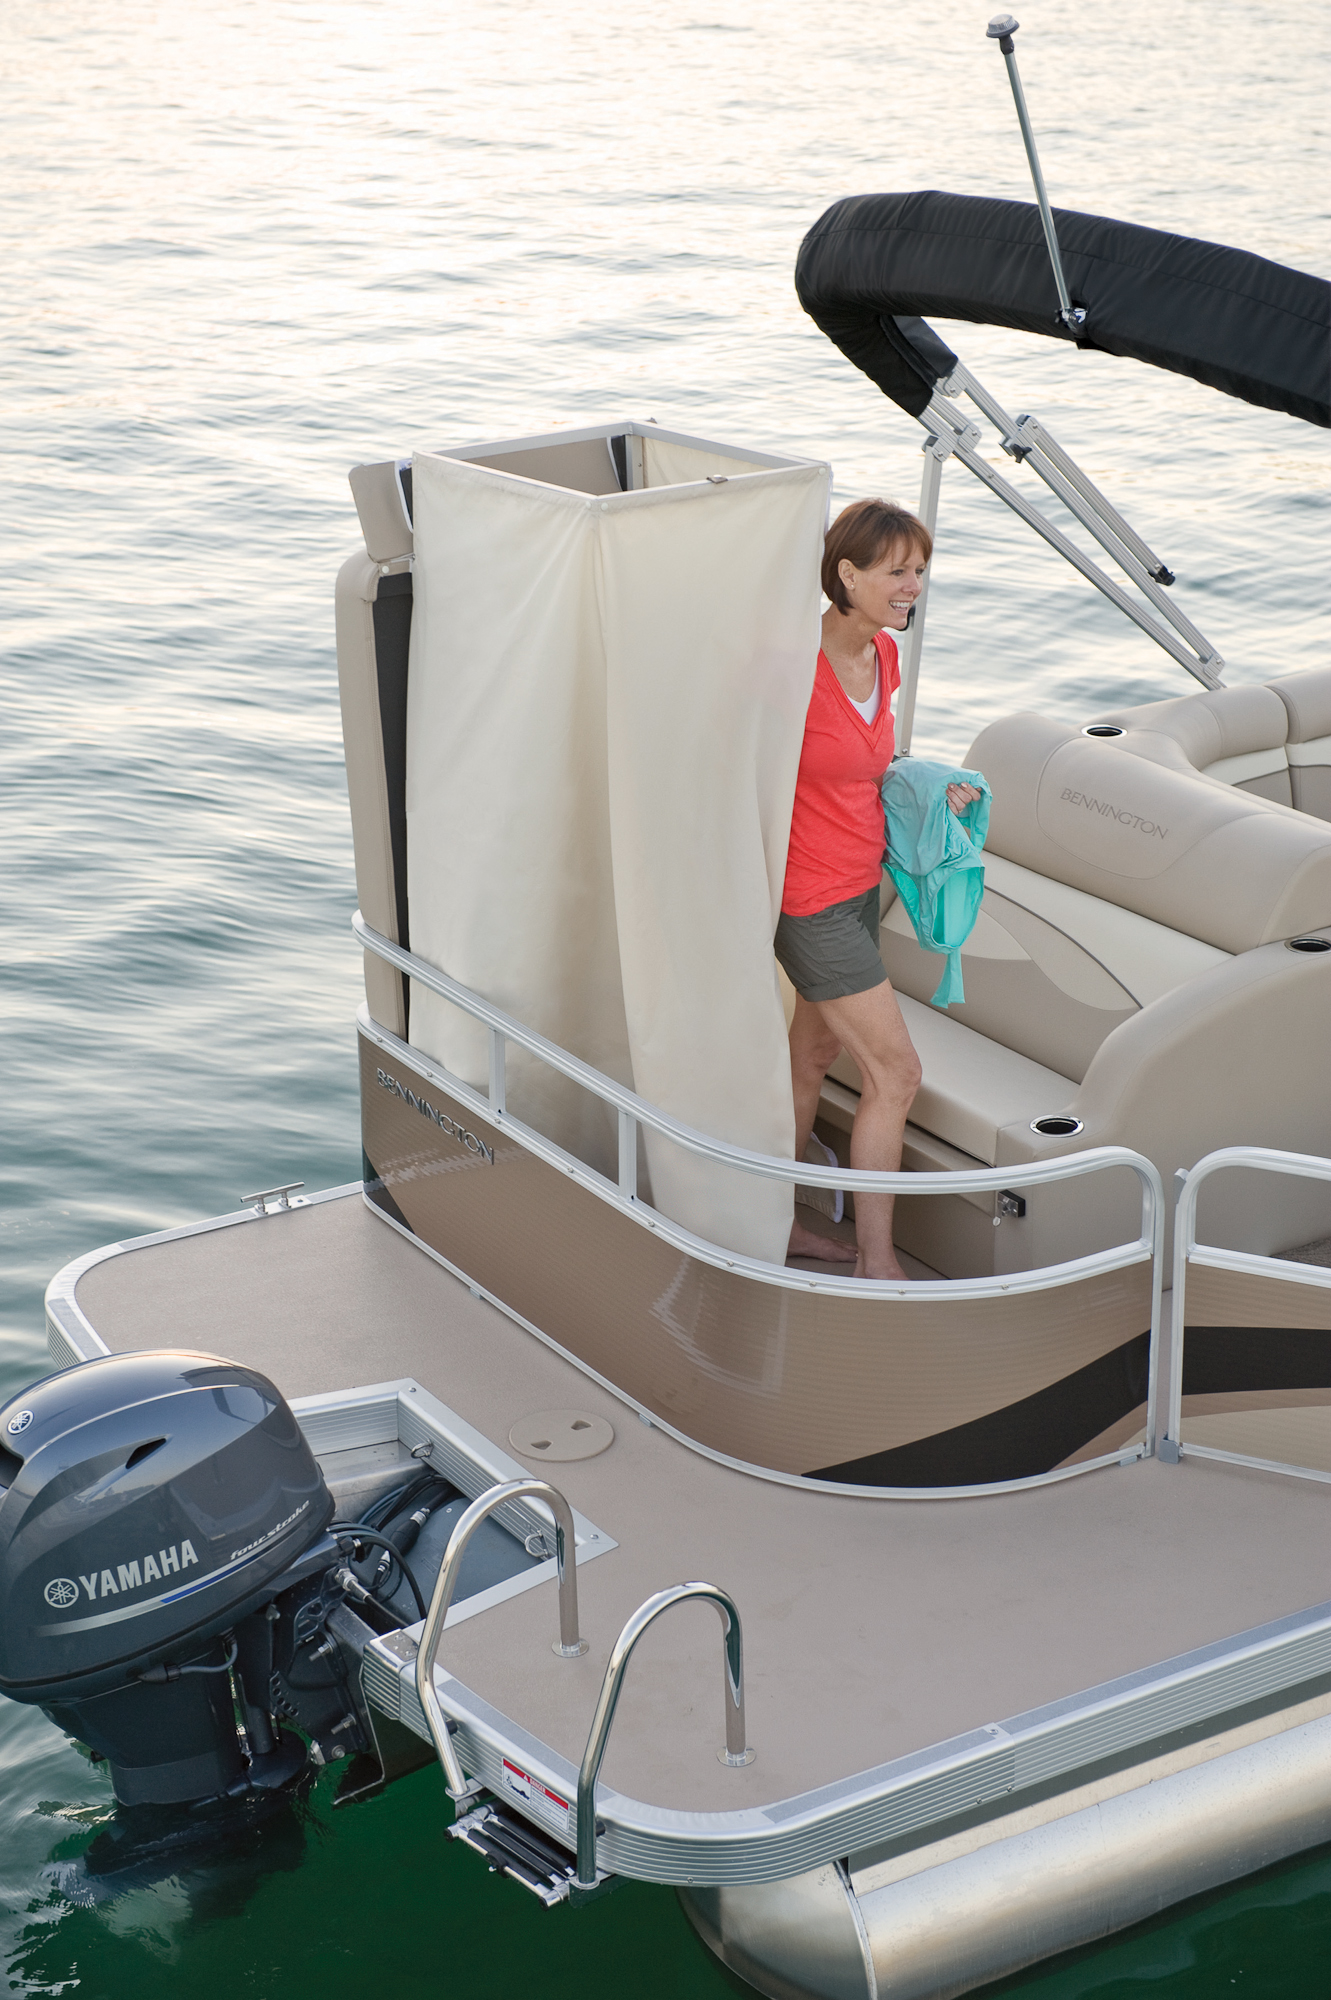 Gs Fish Pontoon Boat With Bathroom Avalon Models Luxury. pontoon boats with bathrooms   Bathroom Design Ideas